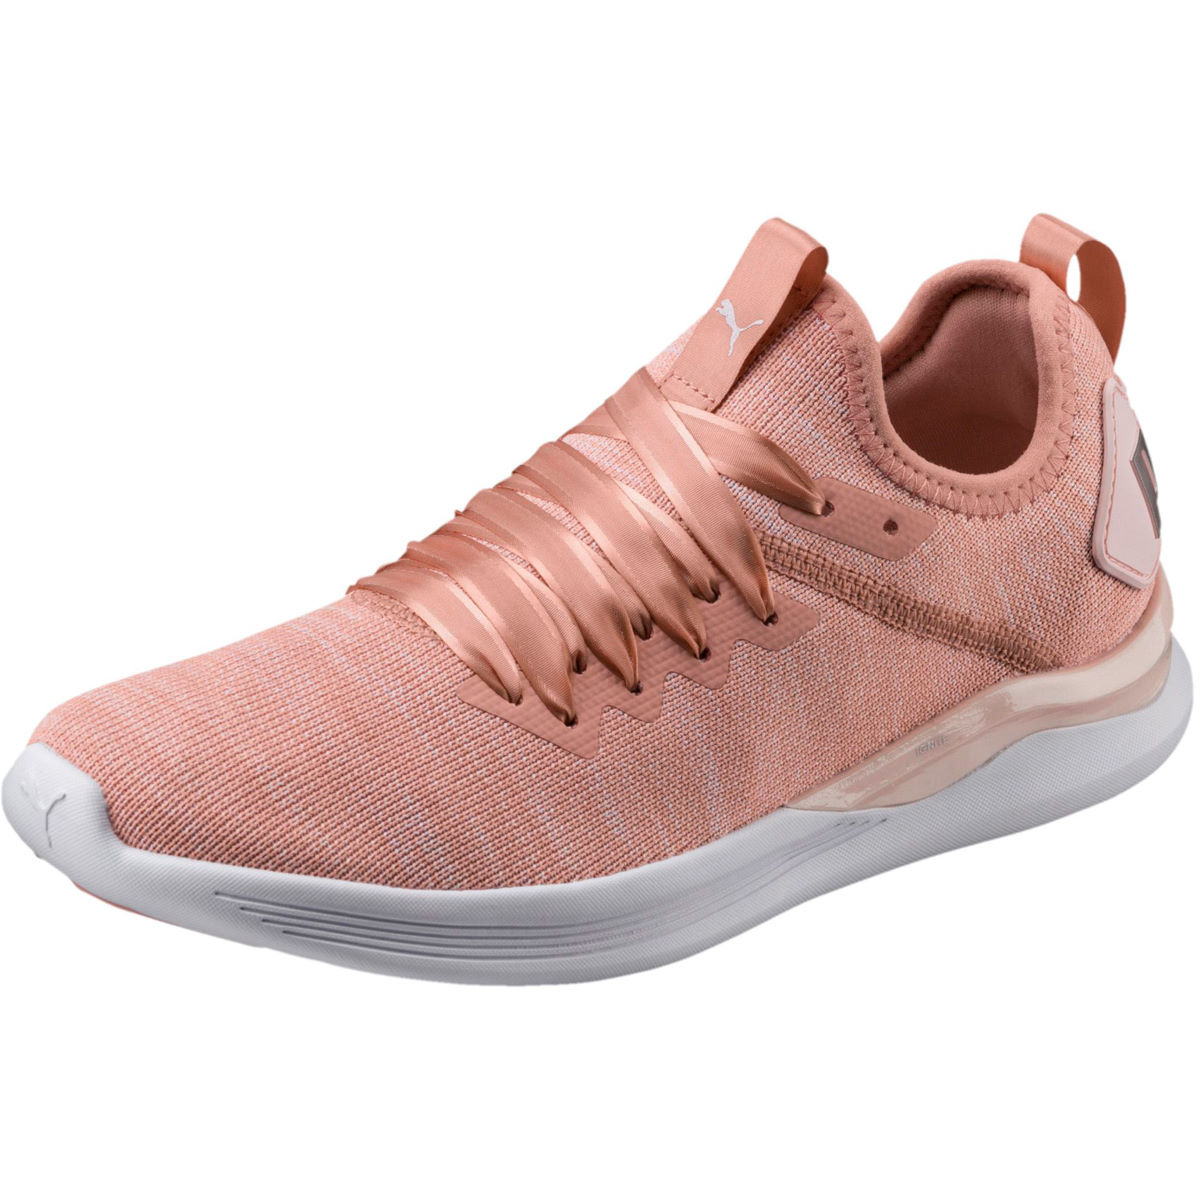 Chaussures Femme Puma Ignite Flash evoKNIT Satin EP - UK 5.5